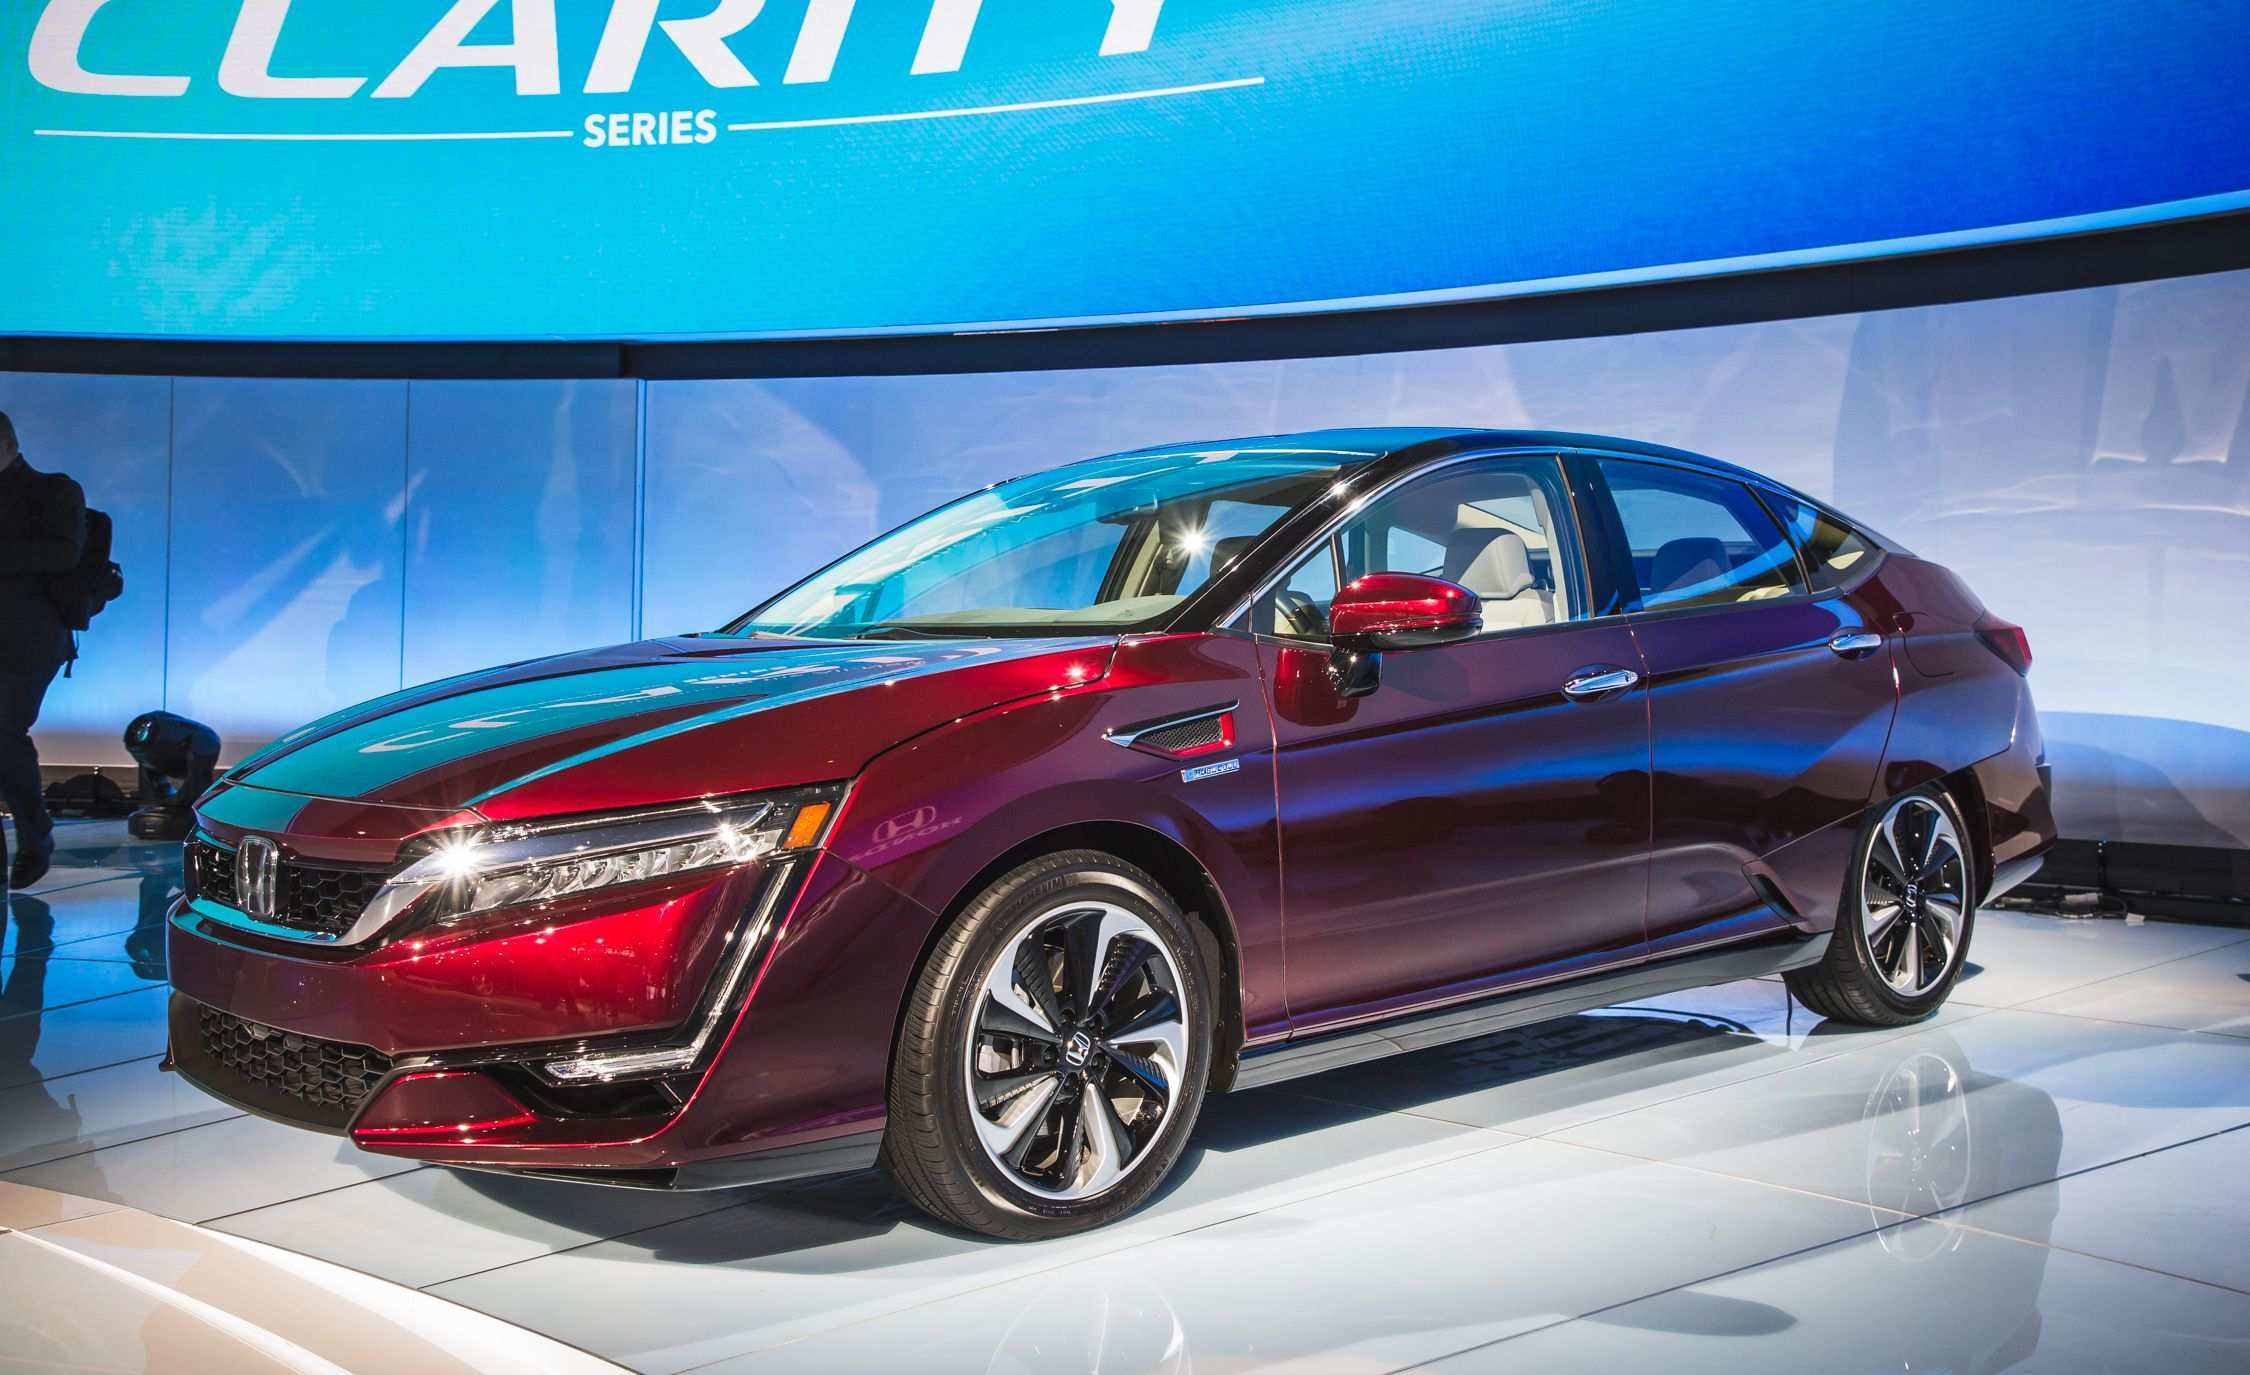 20 Best Review 2020 Honda Clarity Plug In Hybrid Pictures with 2020 Honda Clarity Plug In Hybrid